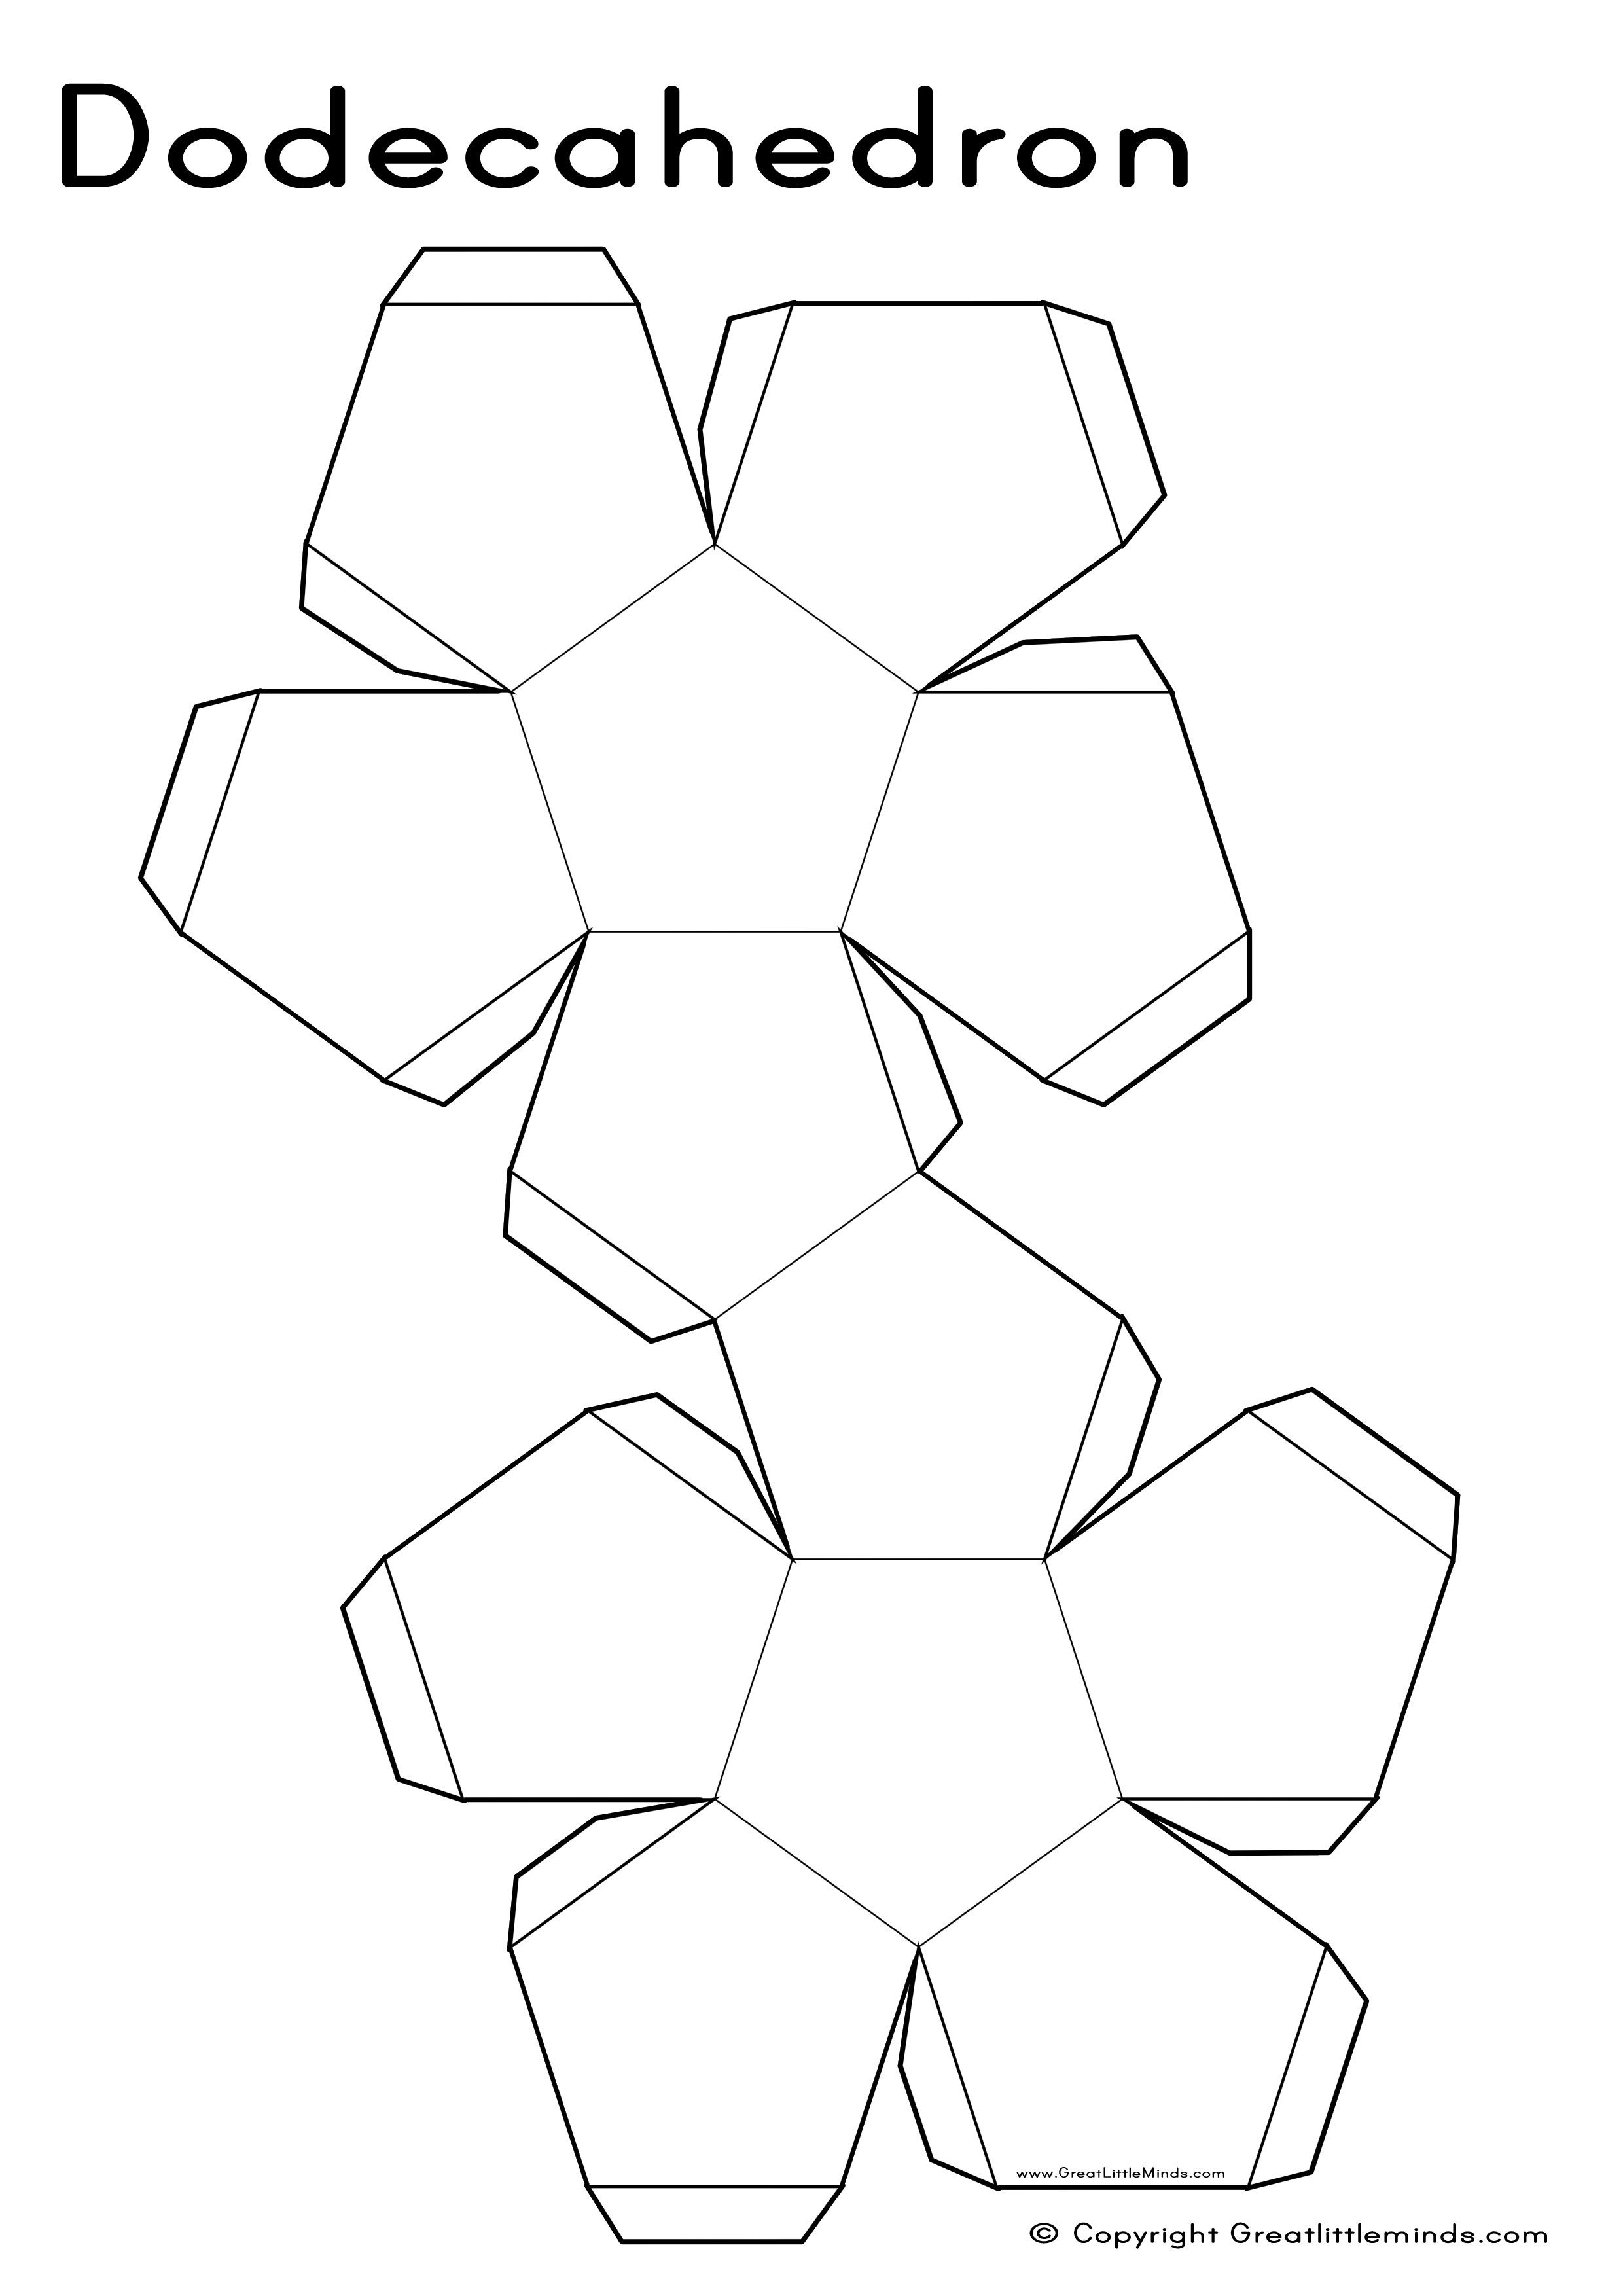 3d nets dodecahedron 2480 3508 unschooling for Geometry net templates